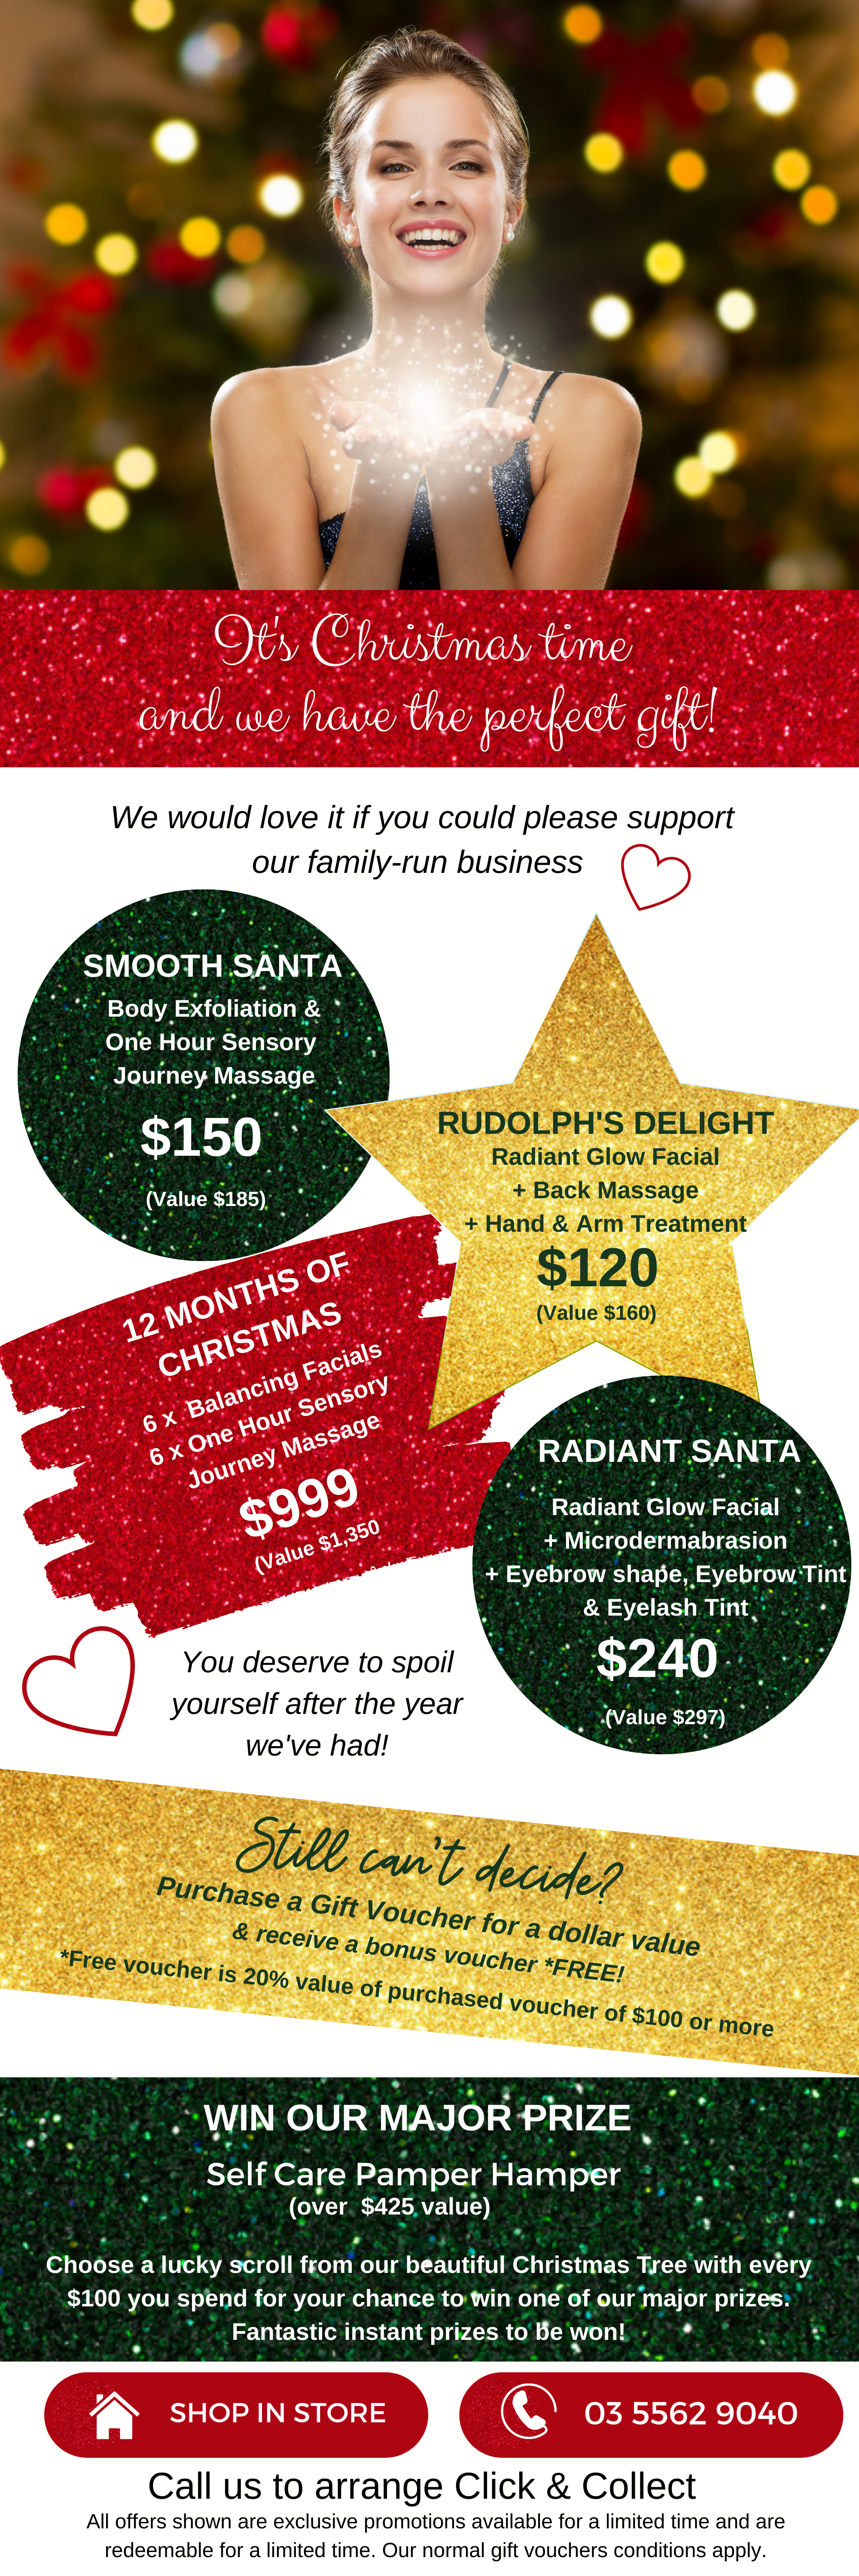 Landing page It's Christmas time and we have the perfect gift!